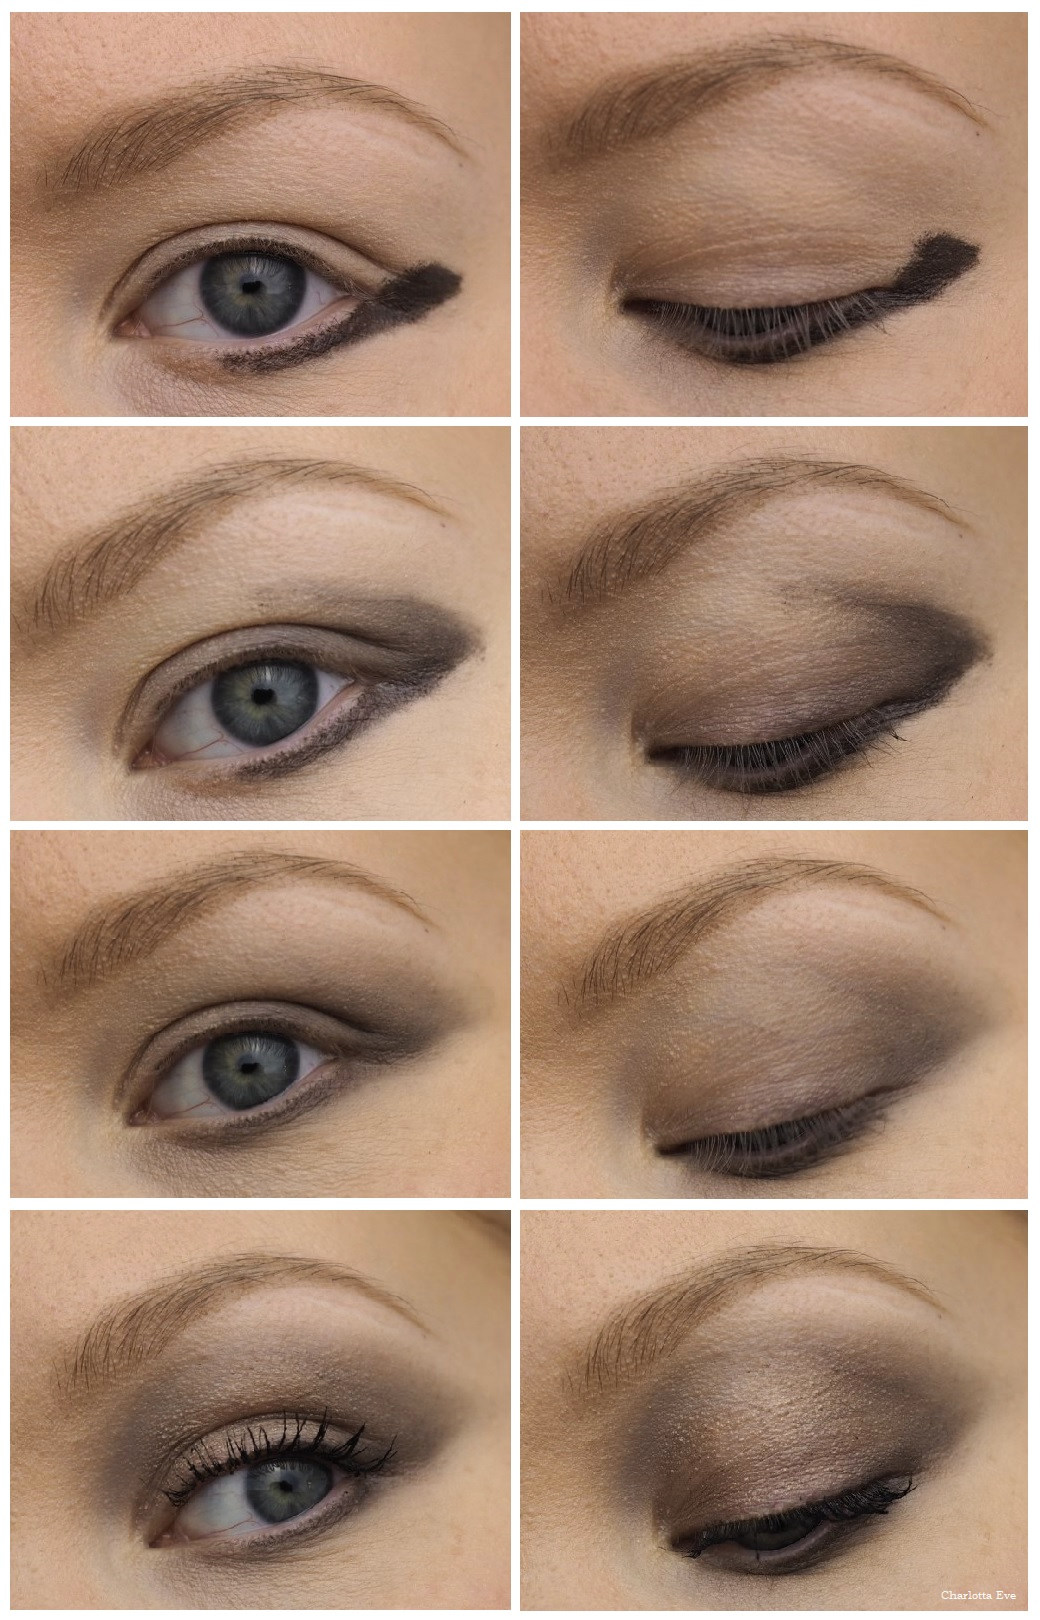 How to: makeup for downturned eyes - Charlotta Eve